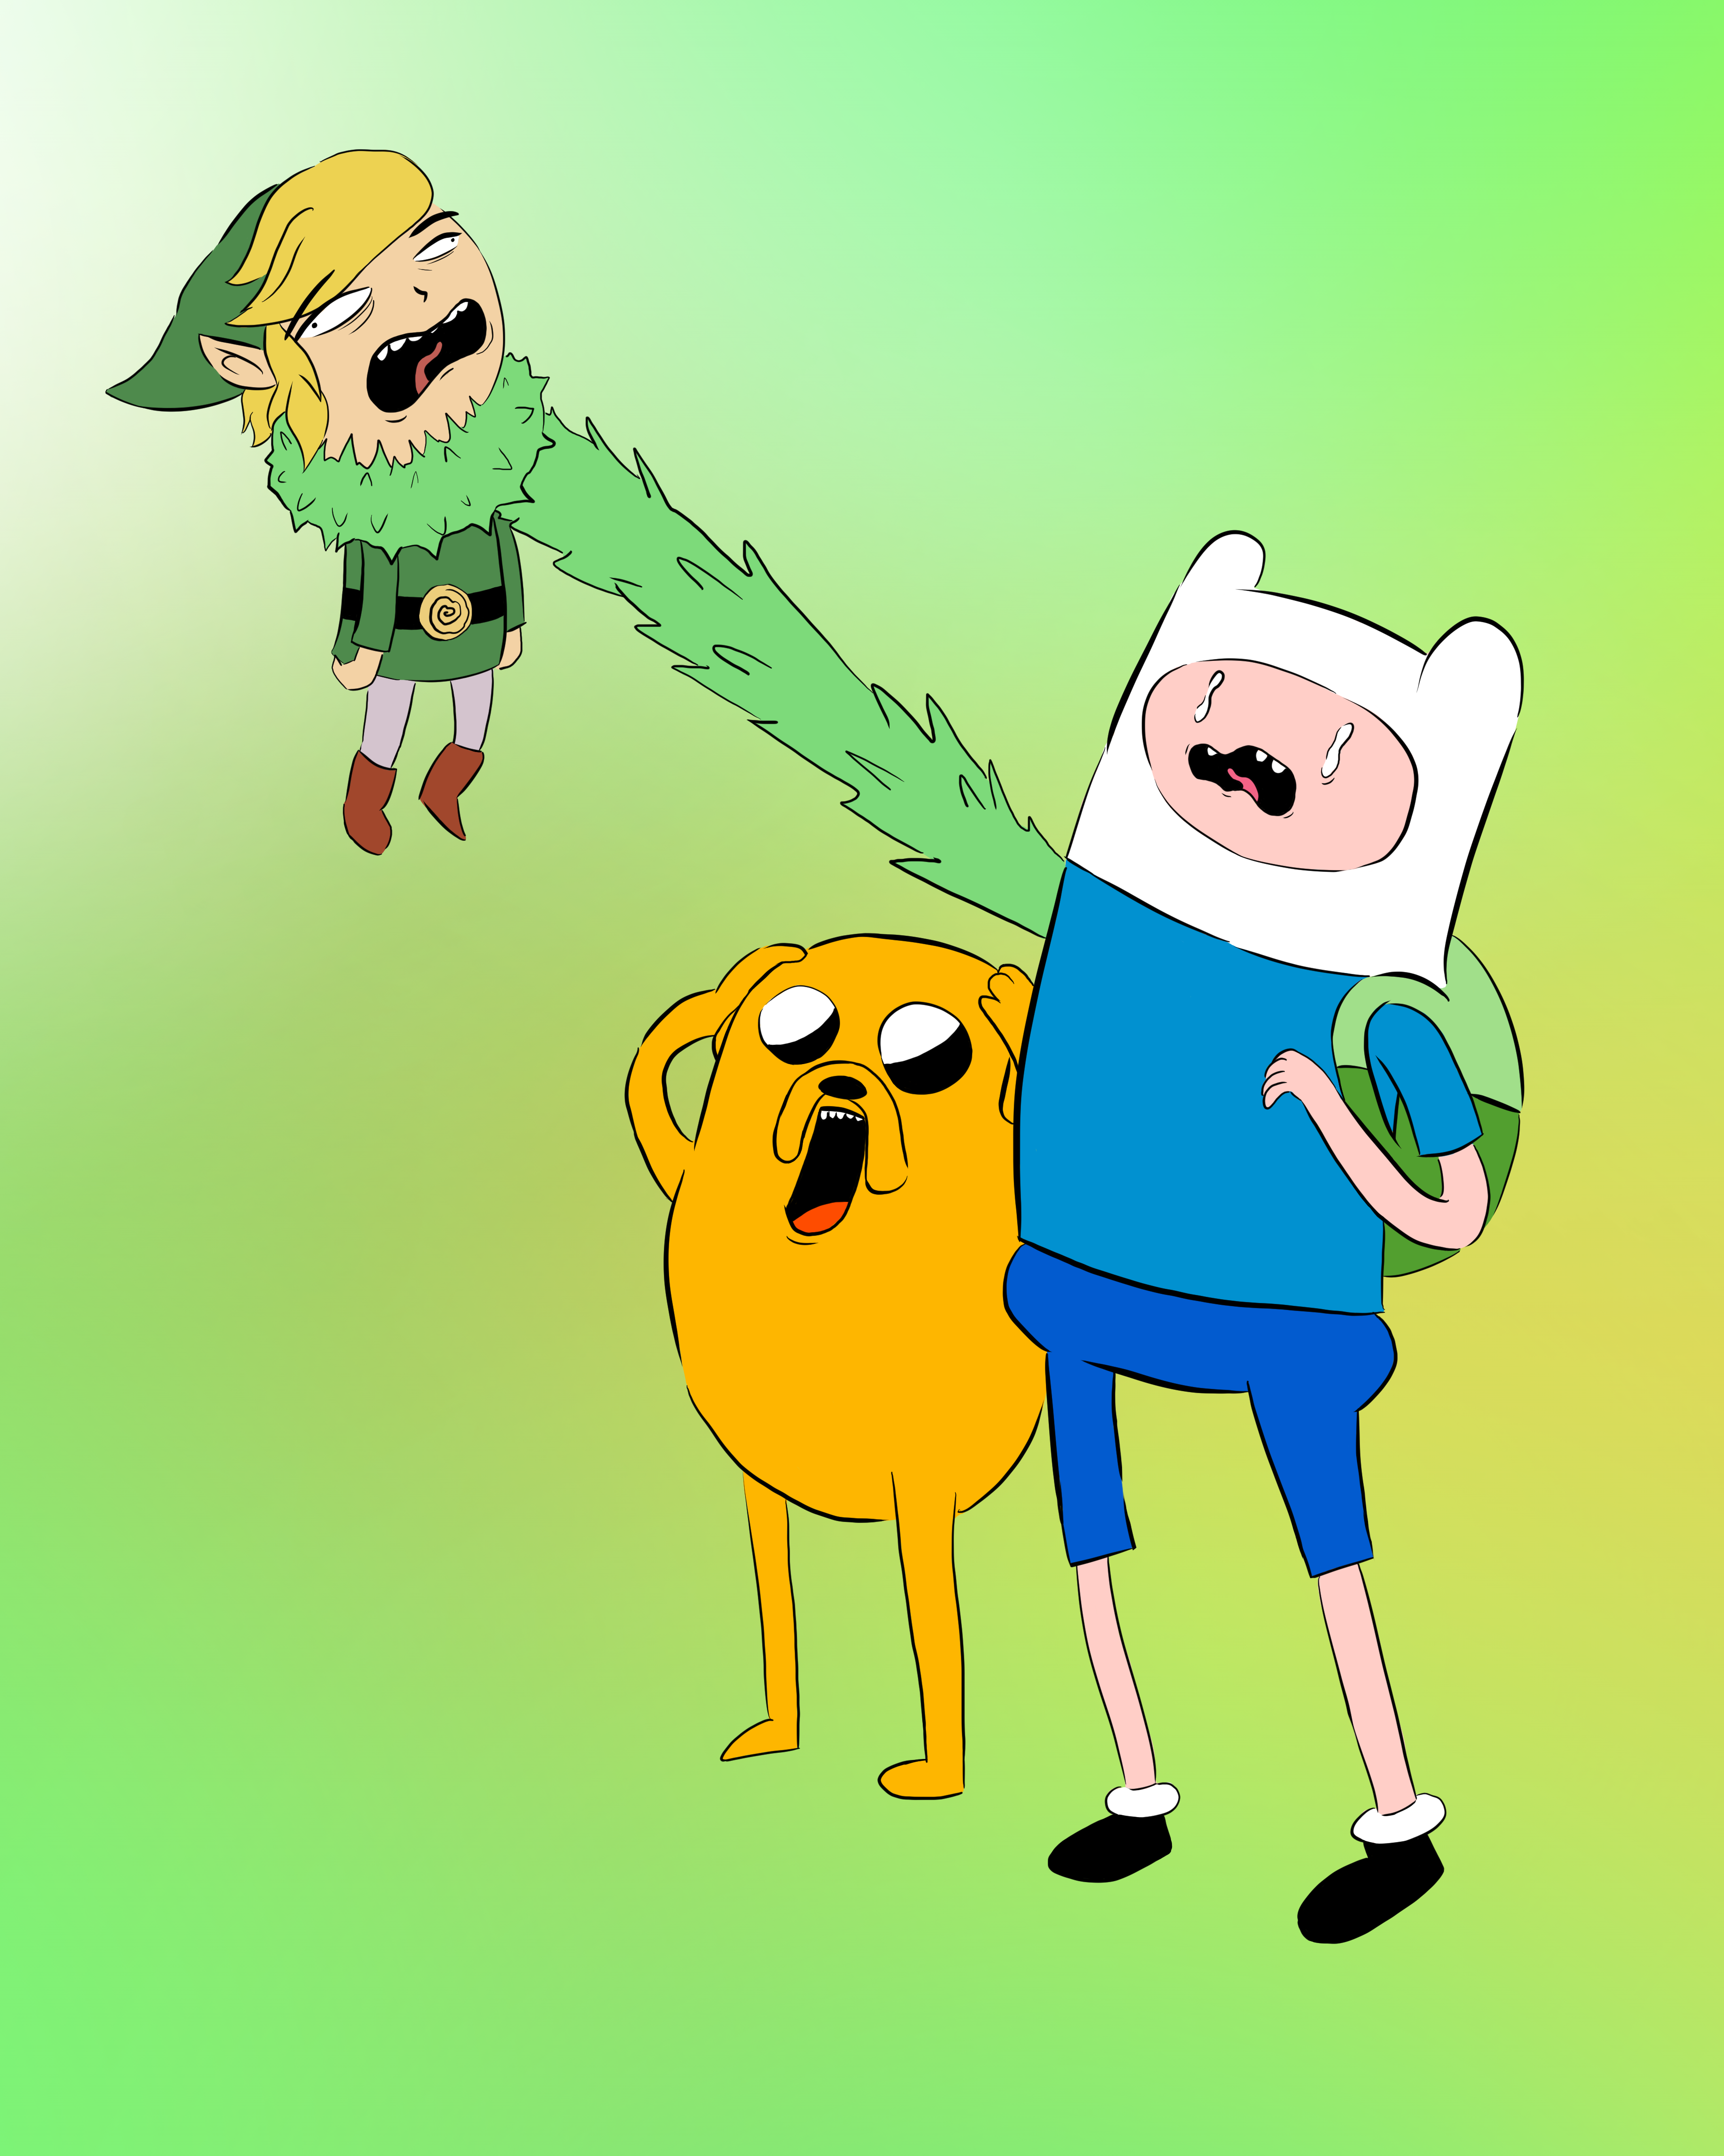 Legend of Adventure Time